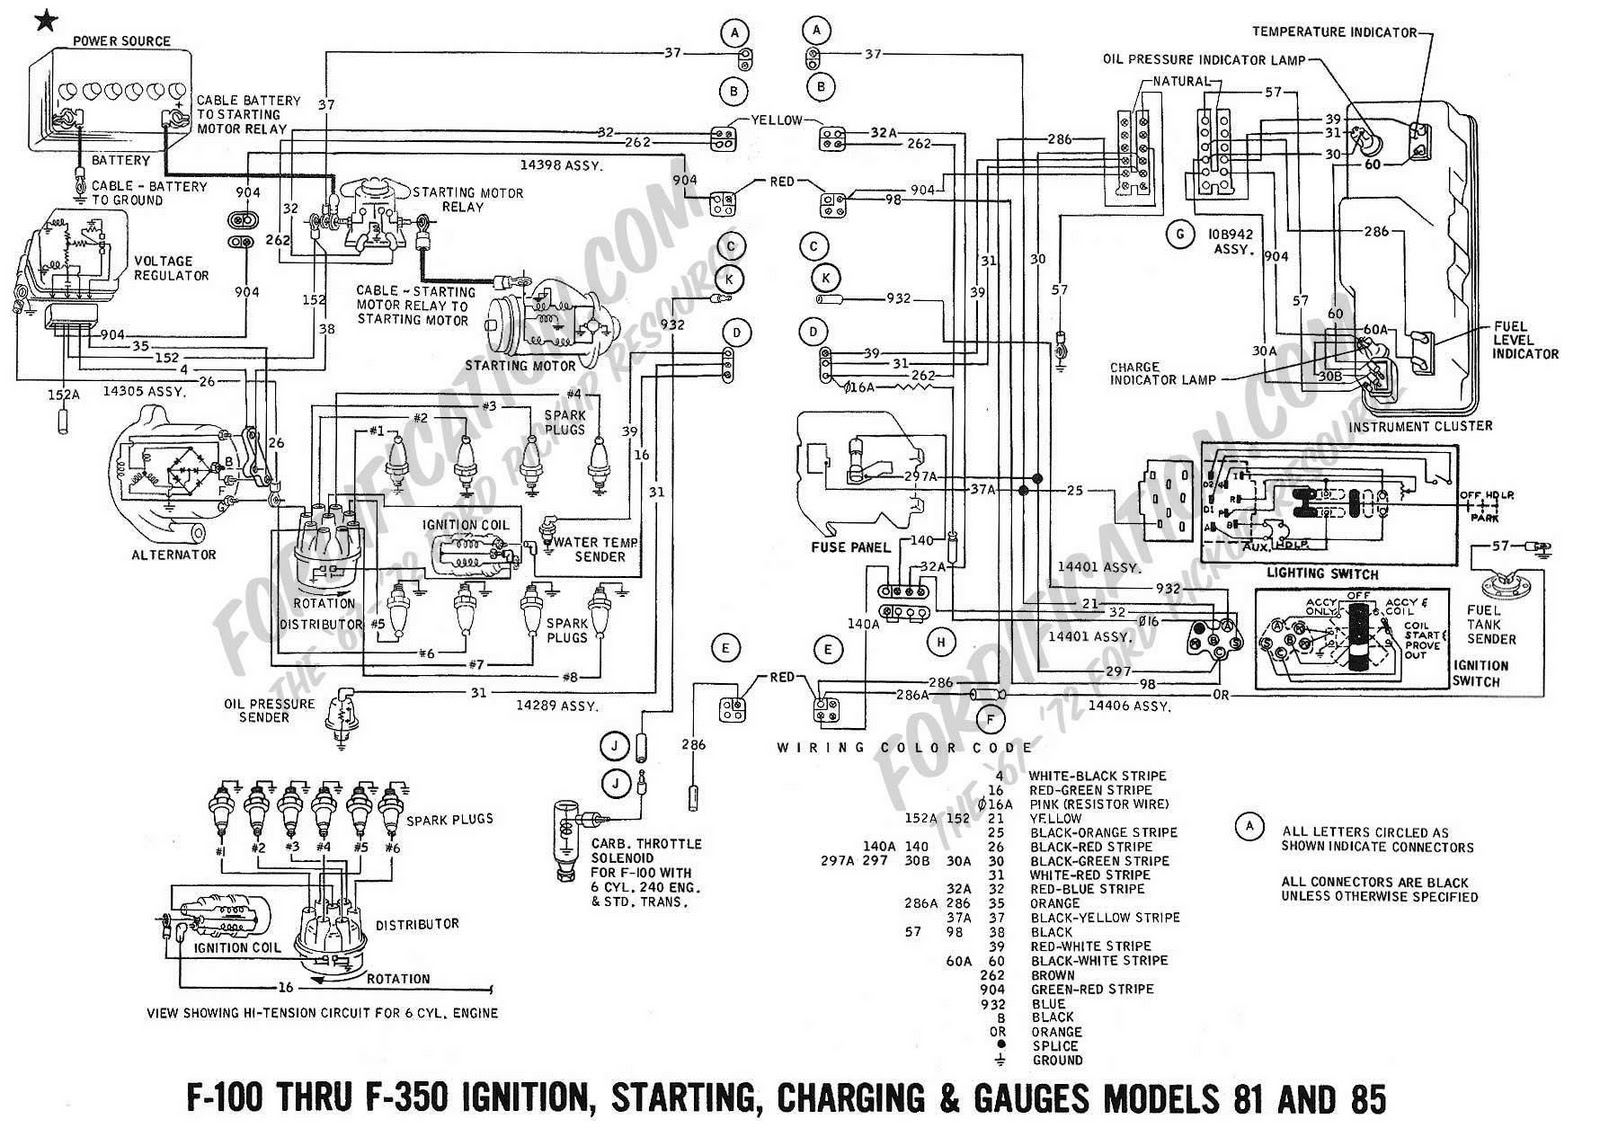 1966 Ford Thunderbird Fuse Box Location | electrical wiring diagram  Ford Thunderbird Fuse Box Location on 1966 thunderbird turn signals, 1965 mustang fuse box location, 1966 thunderbird interior lights,